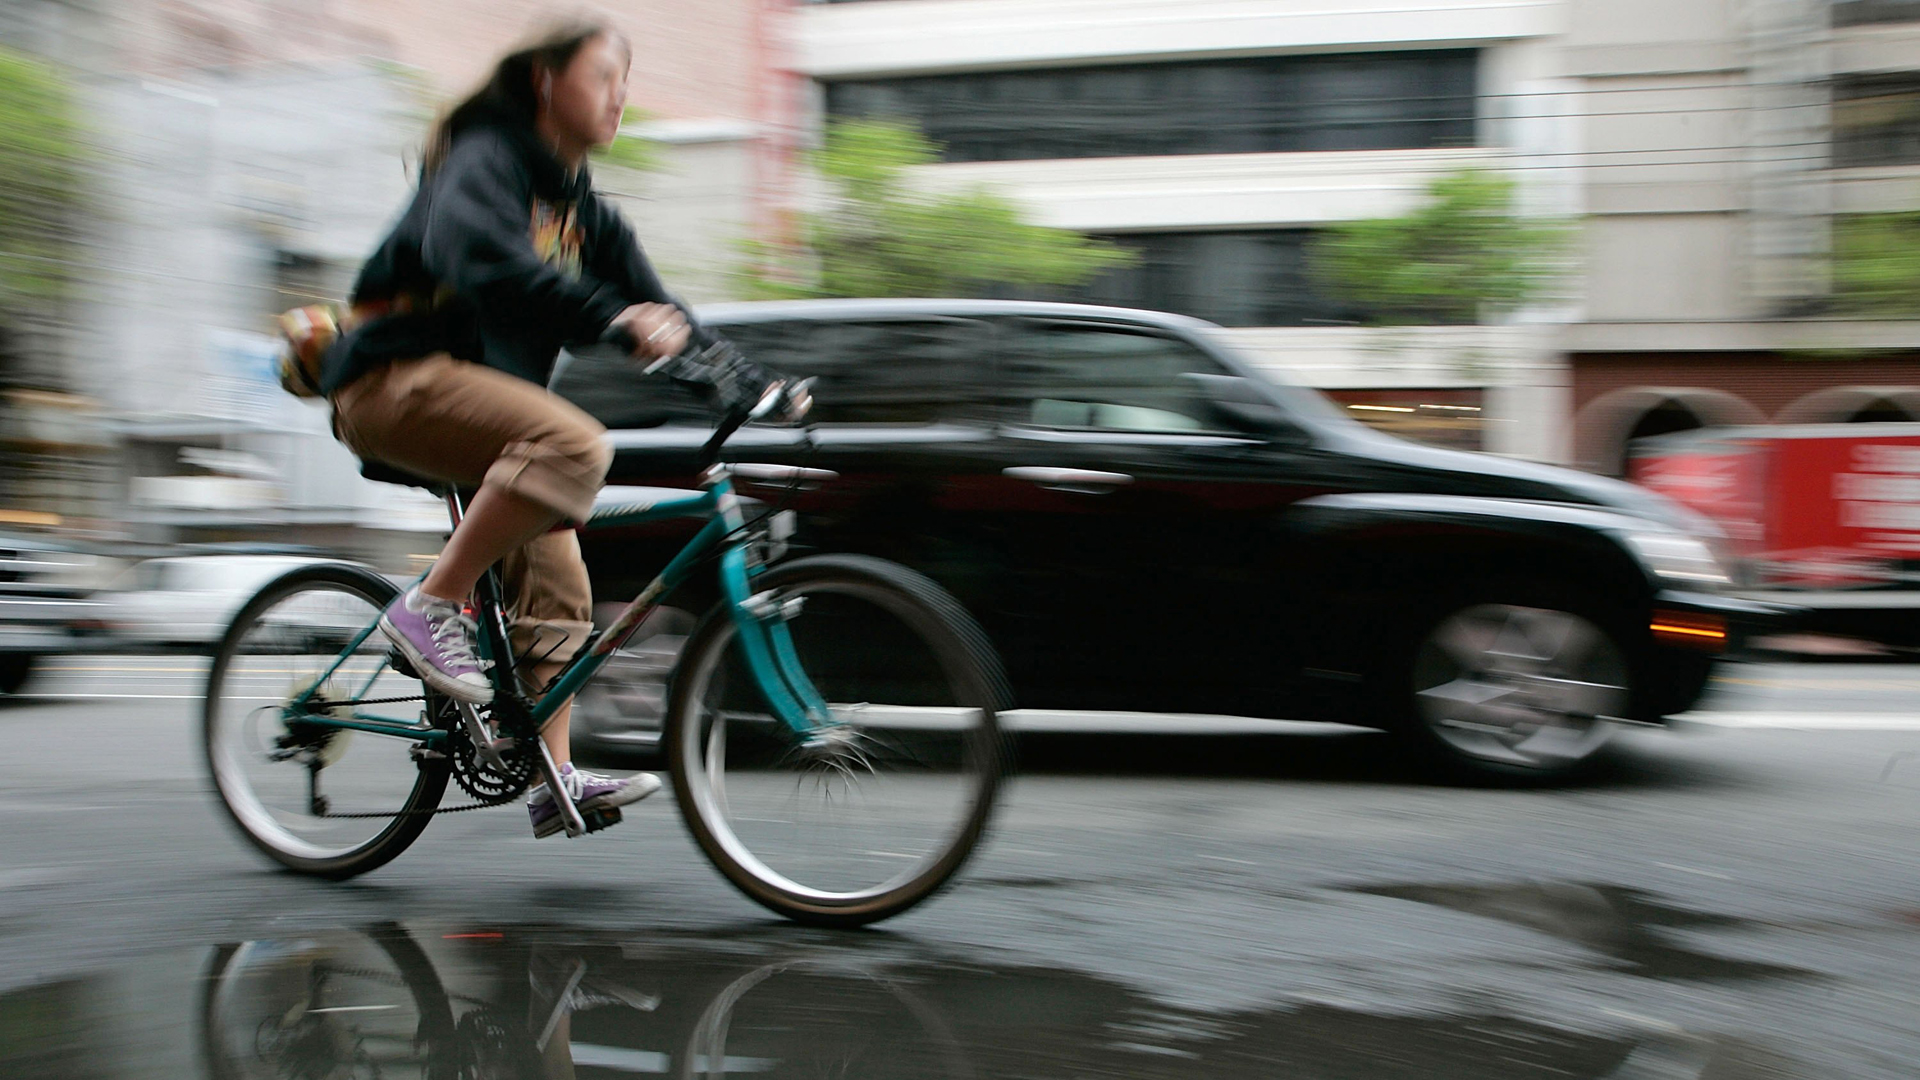 A bicyclist is seen in San Francisco in this file photo. (Credit: Justin Sullivan / Getty Images)